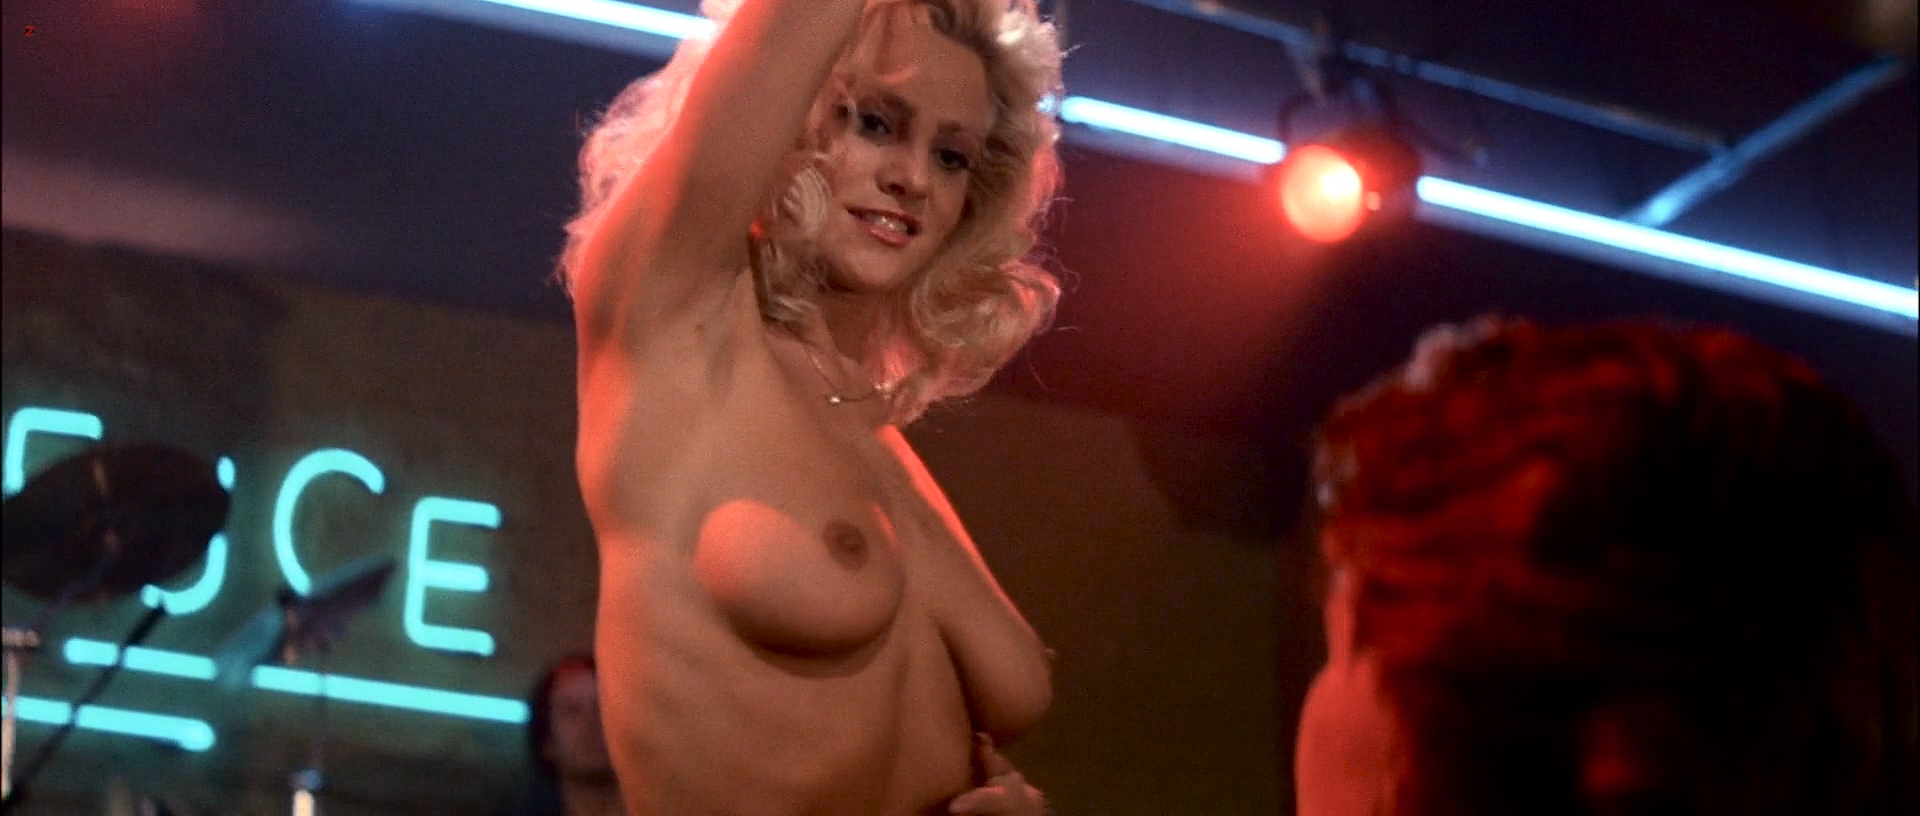 Nackte Kelly Lynch in Road House ANCENSORED